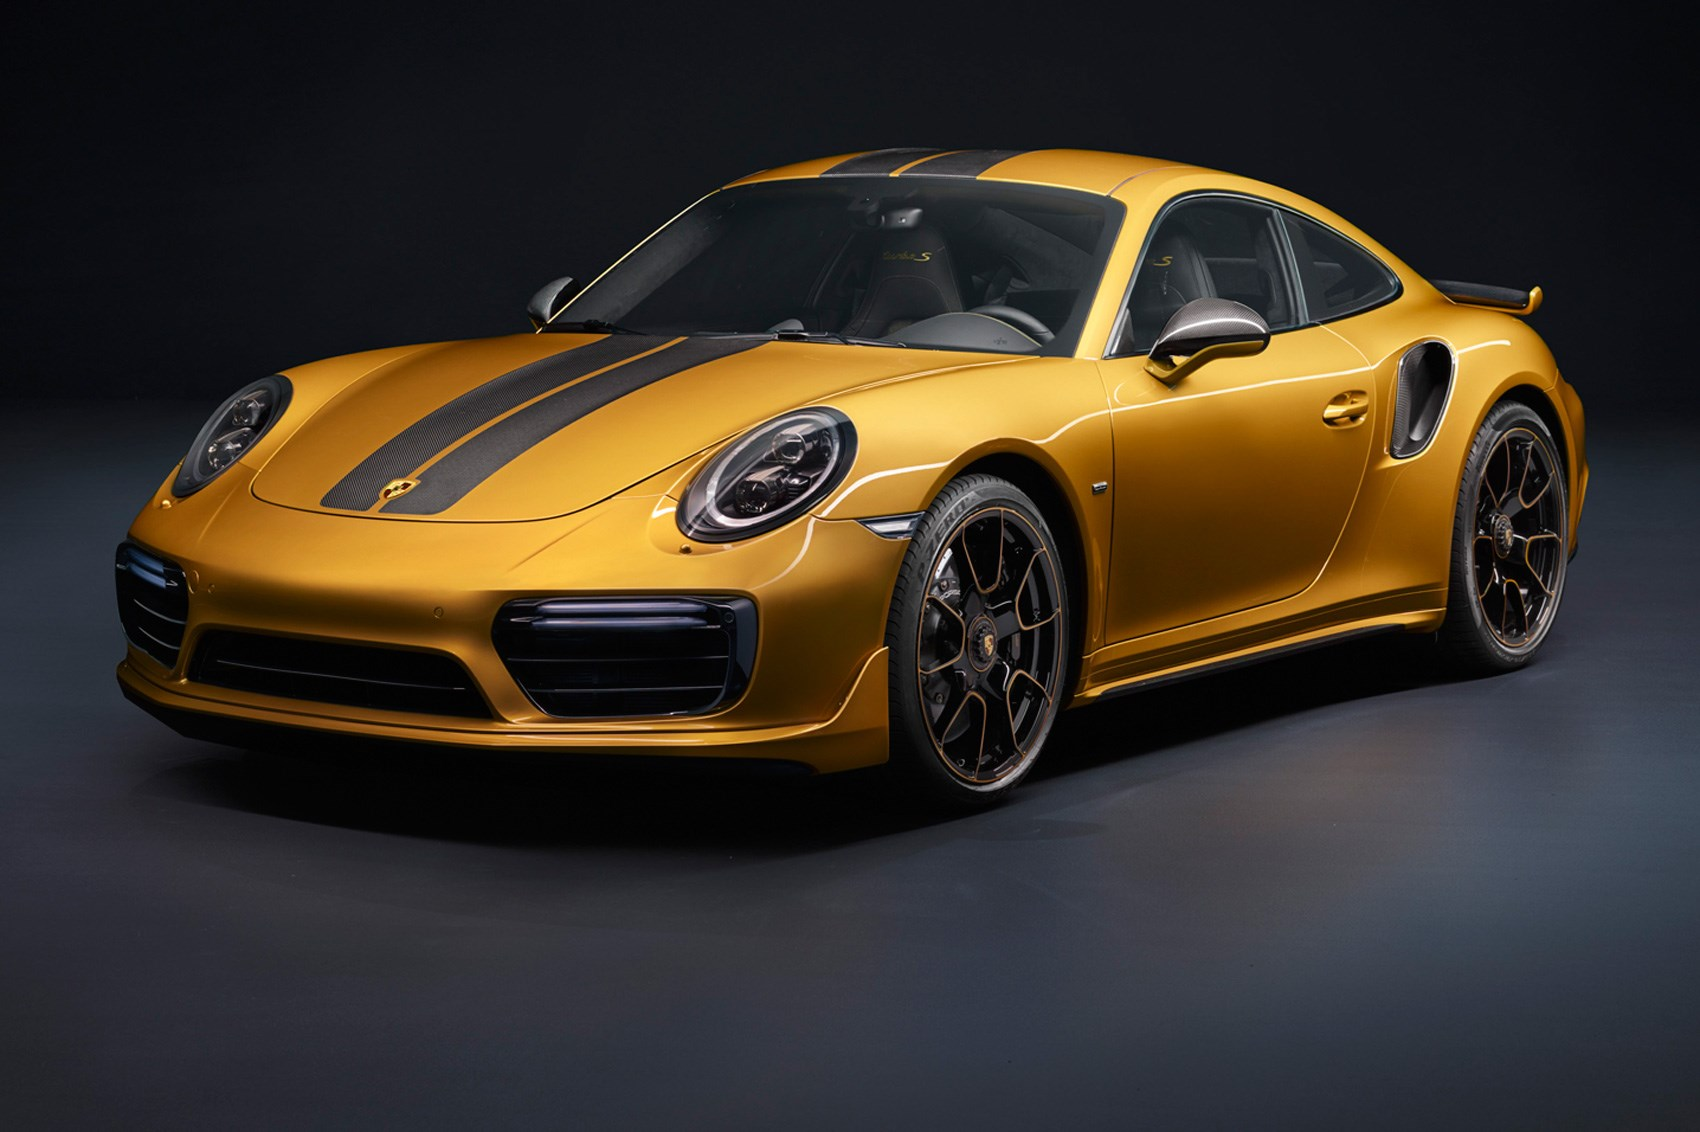 Porsche 911 Turbo S Exclusive Series The Most Ful Of Lot